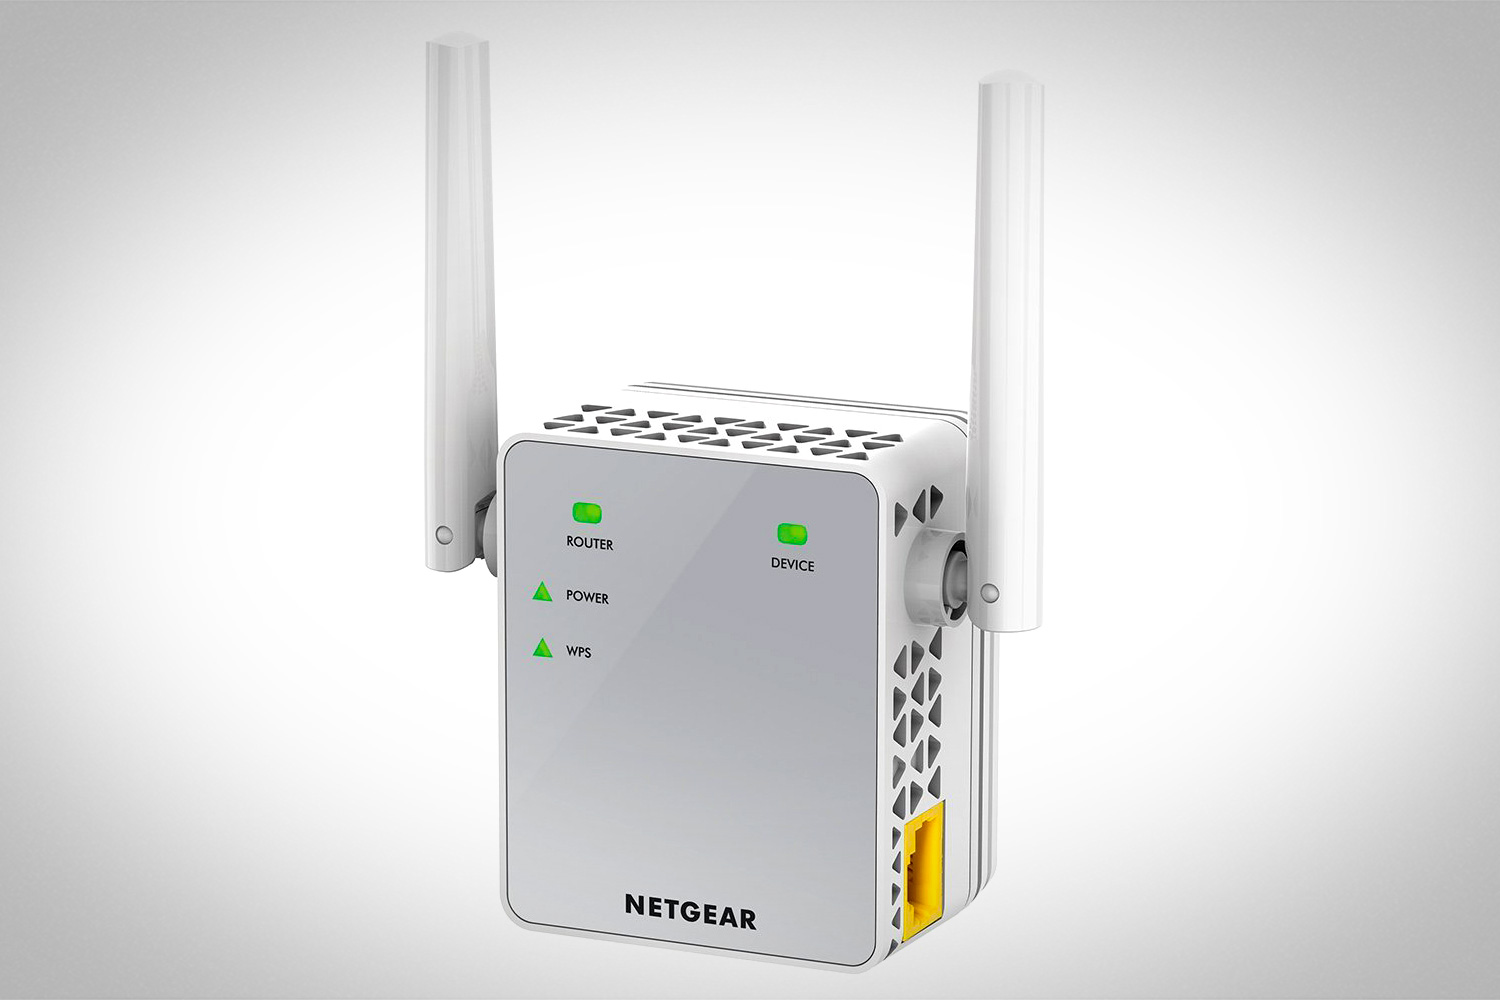 Extend your router's reach with Netgear AC750 Wi-Fi range extender, now $30